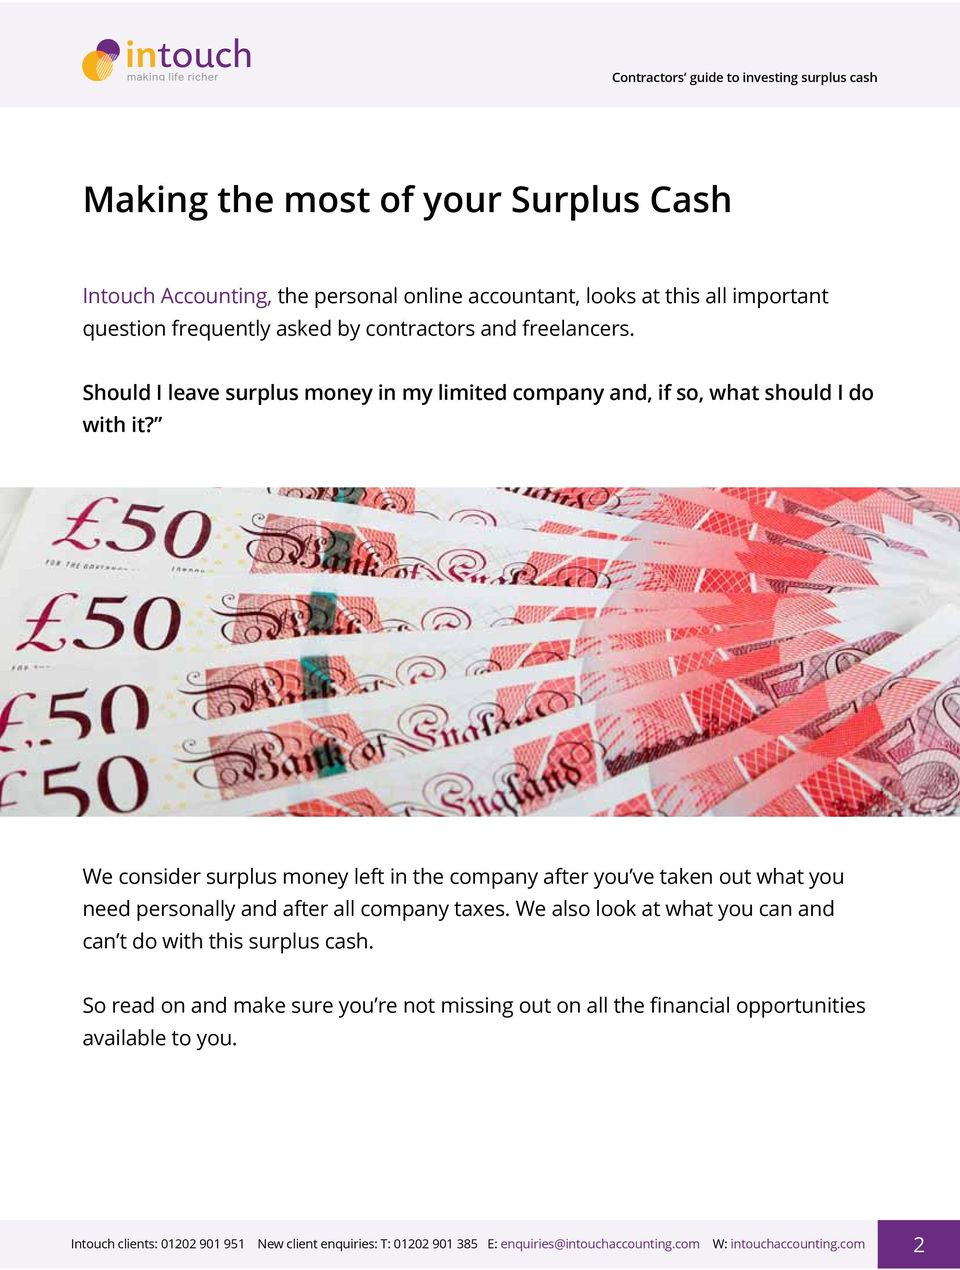 We consider surplus money left in the company after you ve taken out what you need personally and after all company taxes.